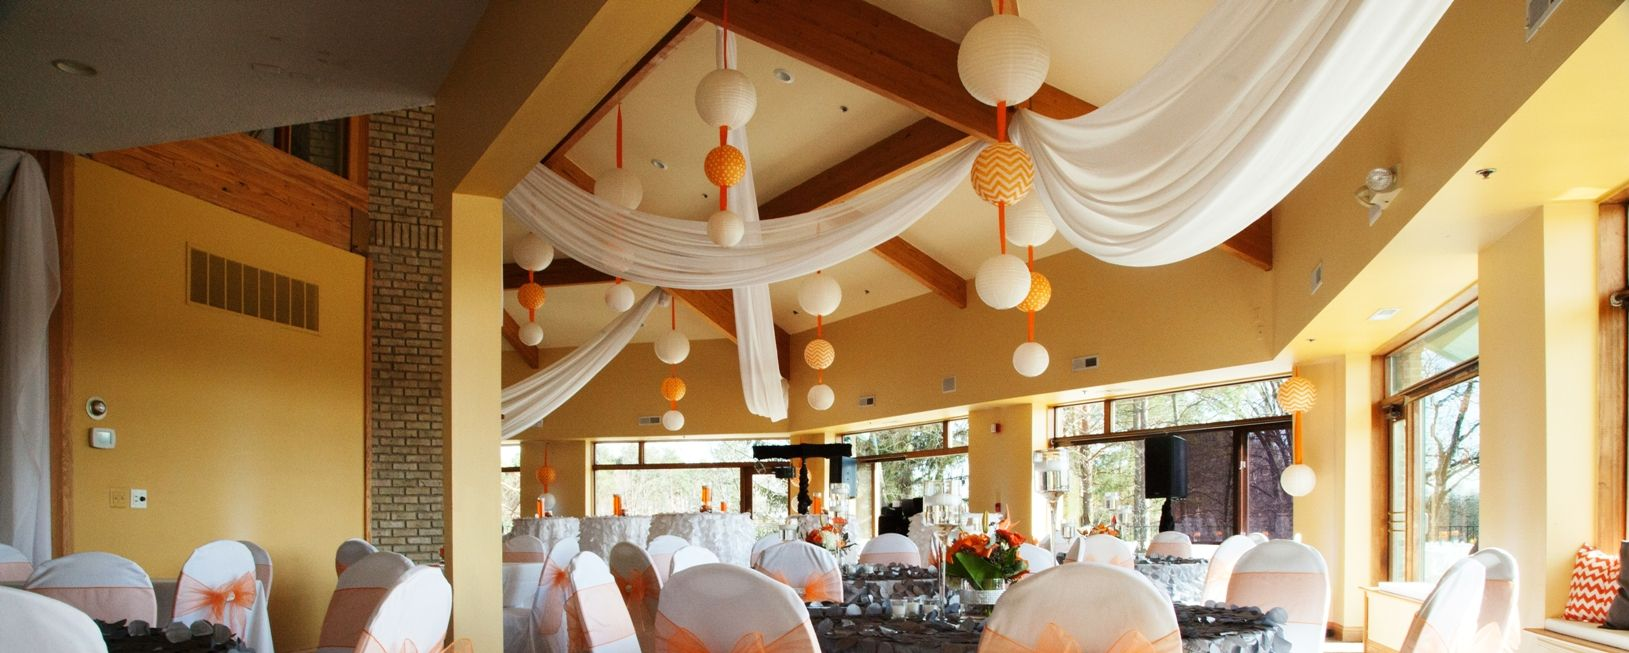 Wedding Venue Whispering Pines Golf Club And Is In Pinckney Michigan This Provides A Atmosphere For Your The